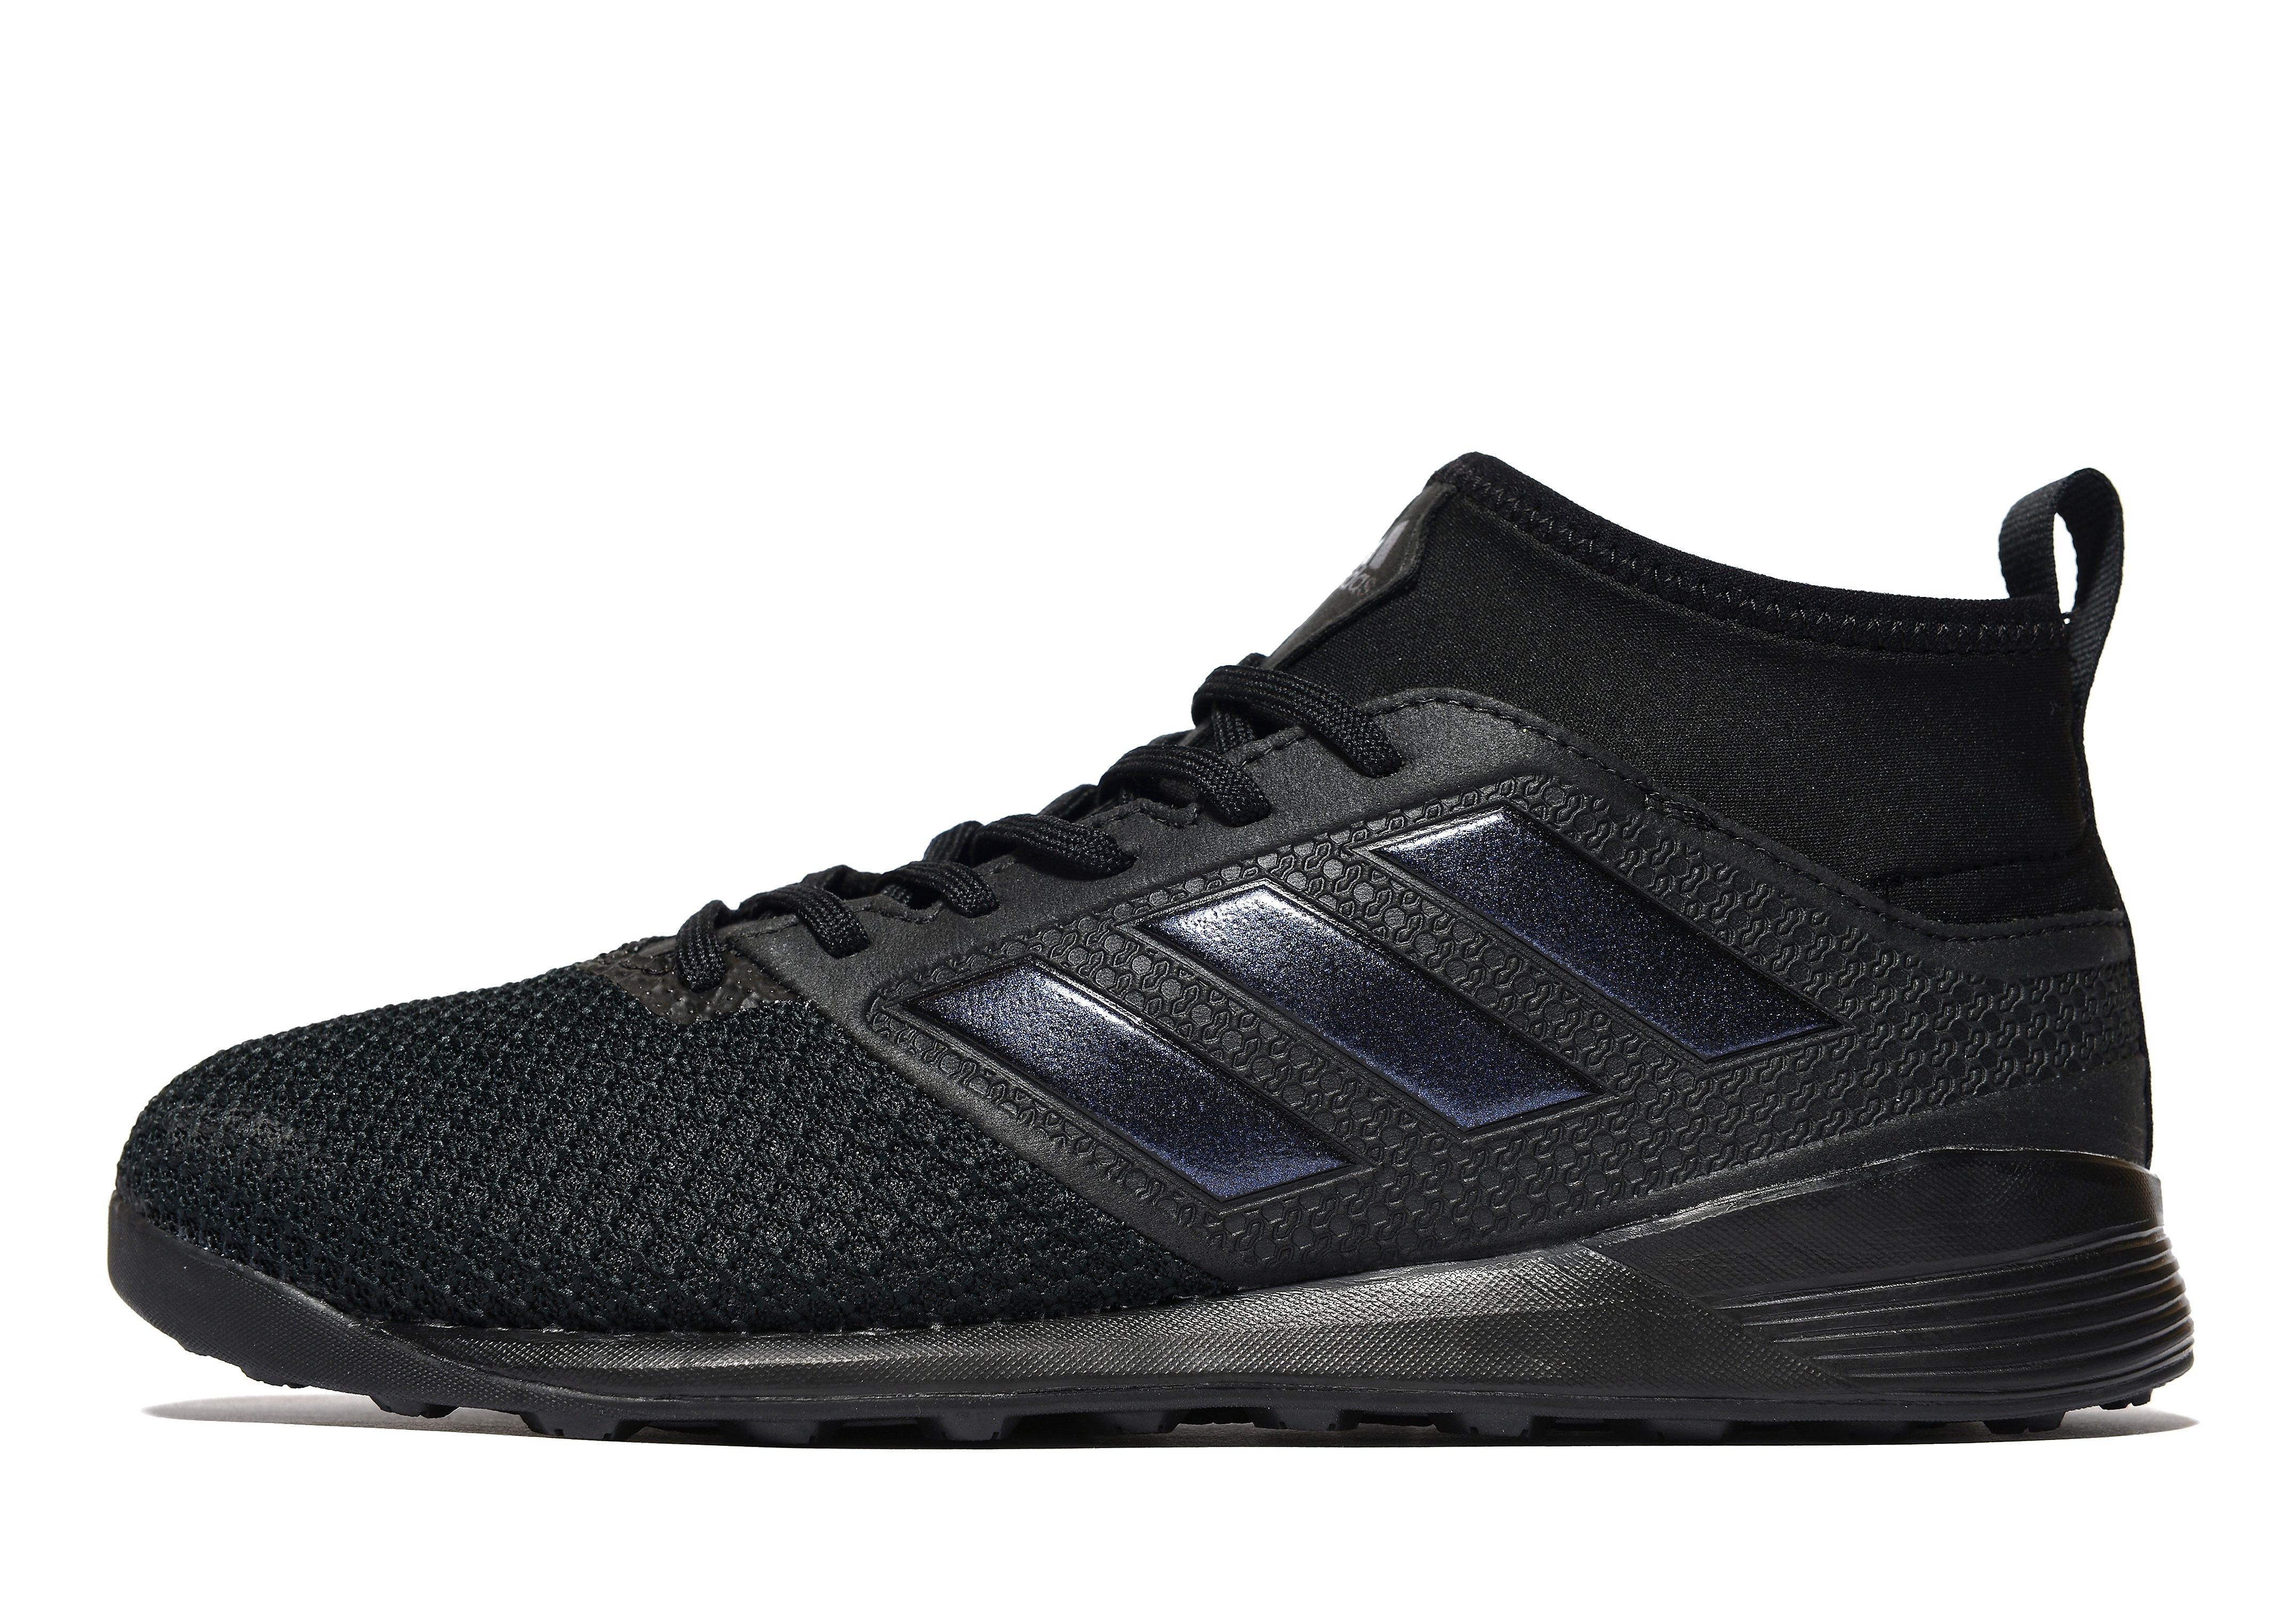 adidas Magnetic Storm ACE Tango 17.3 TR